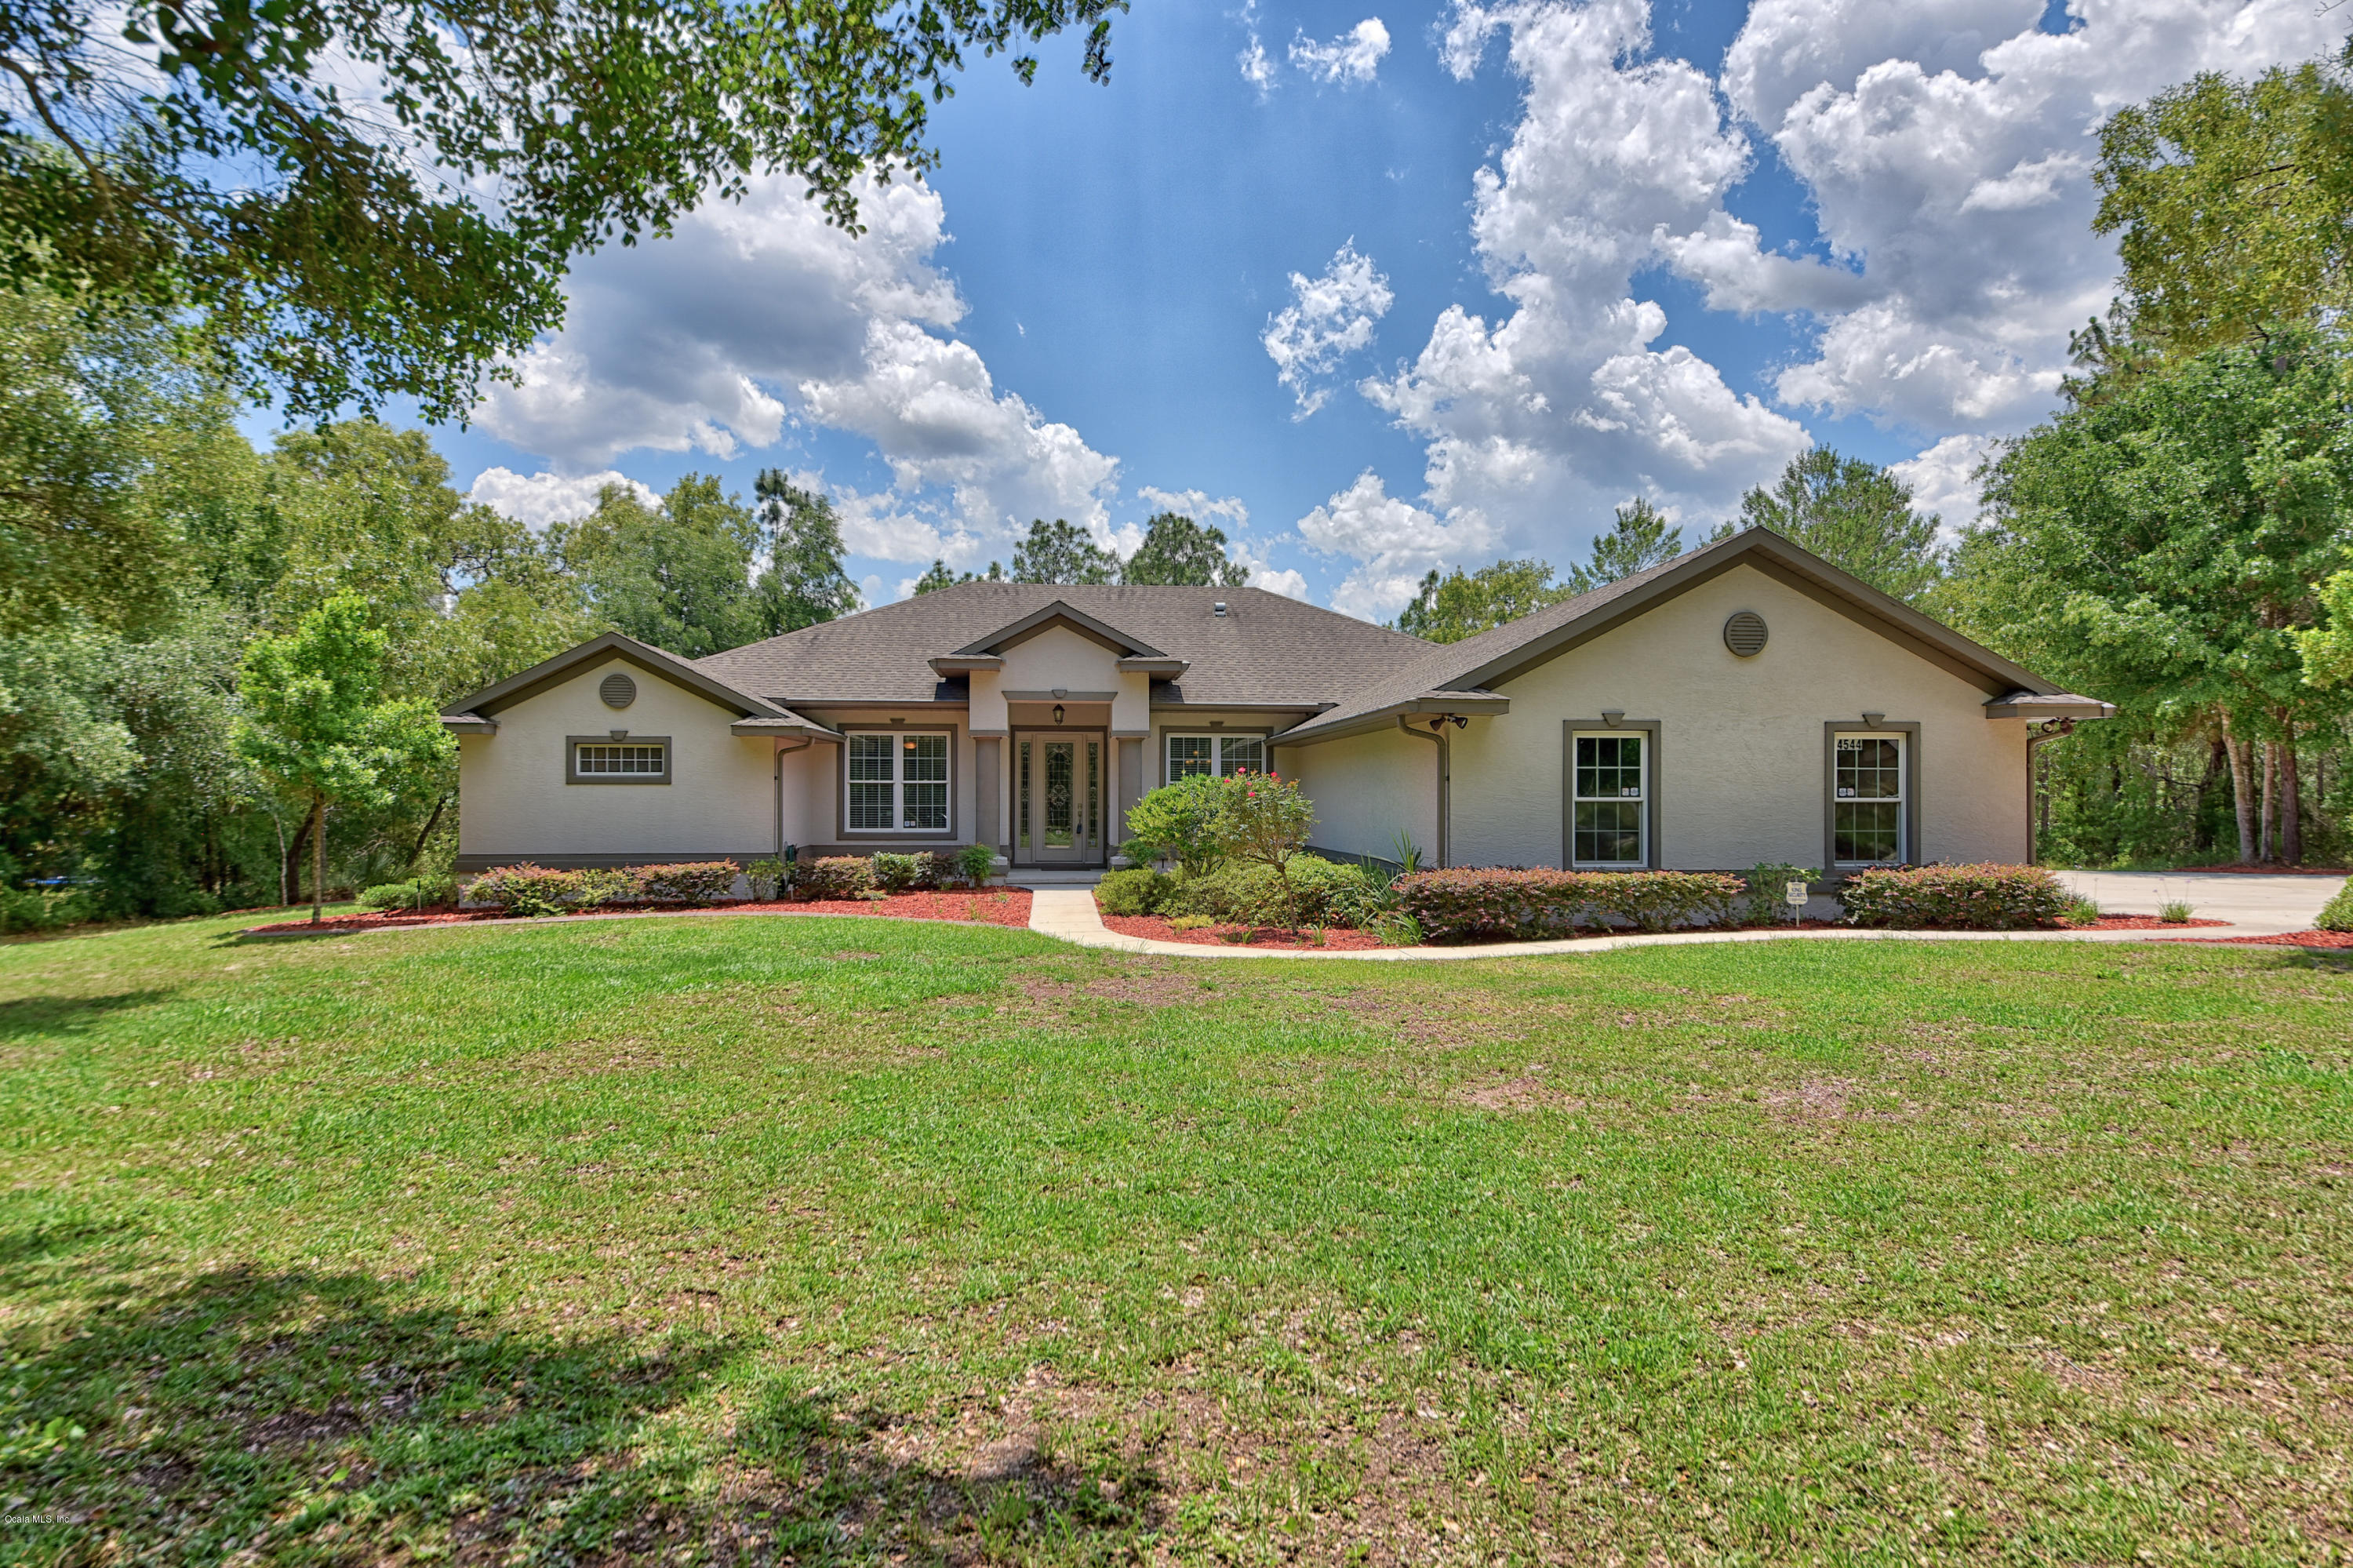 4544 SW 116TH PLACE, OCALA, FL 34476